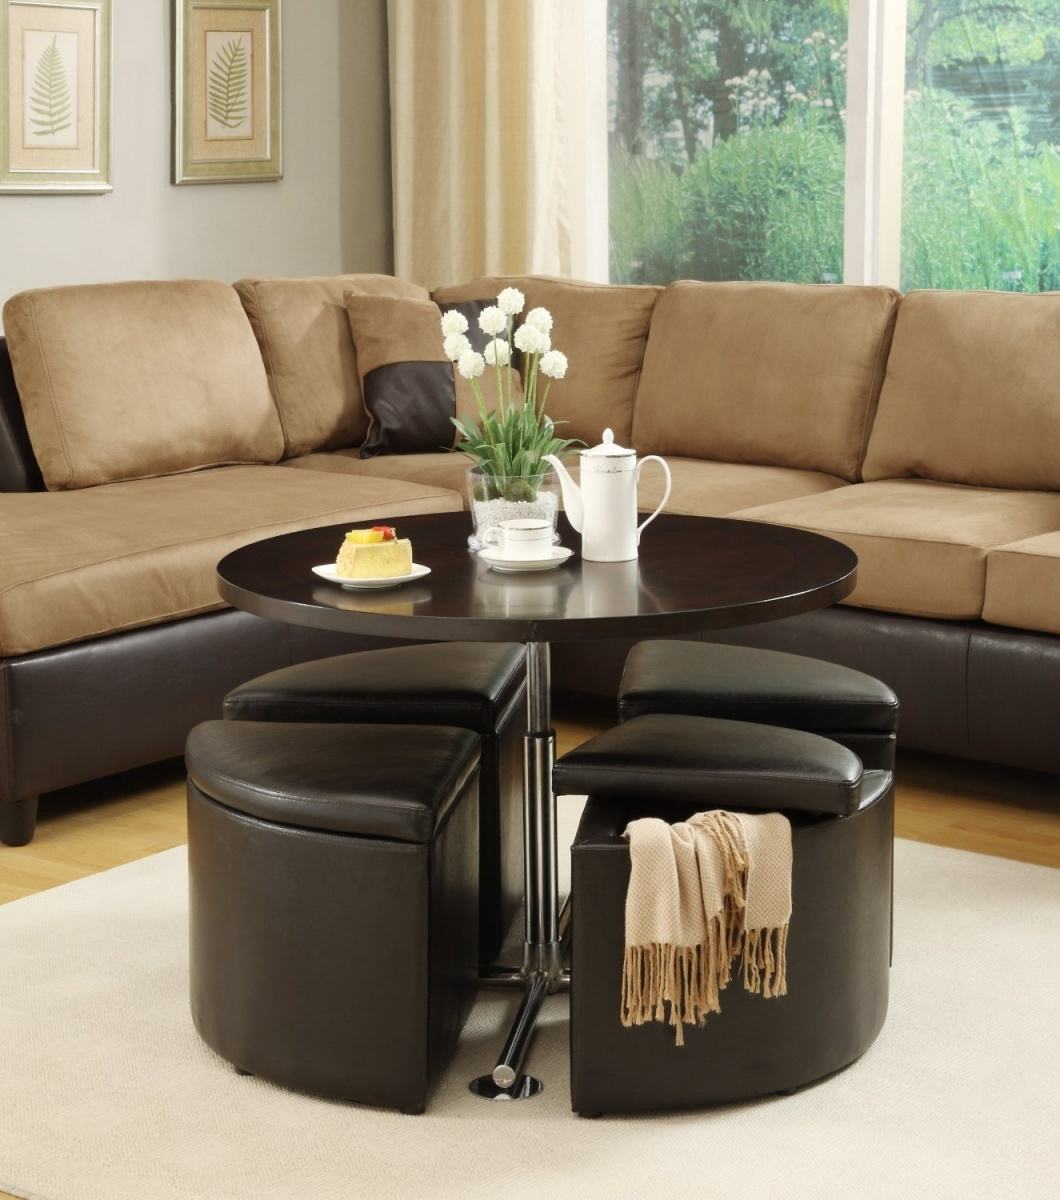 Coffee Table For Sectional Idi Design With Coffee Table For Sectional Sofa (#2 of 12)